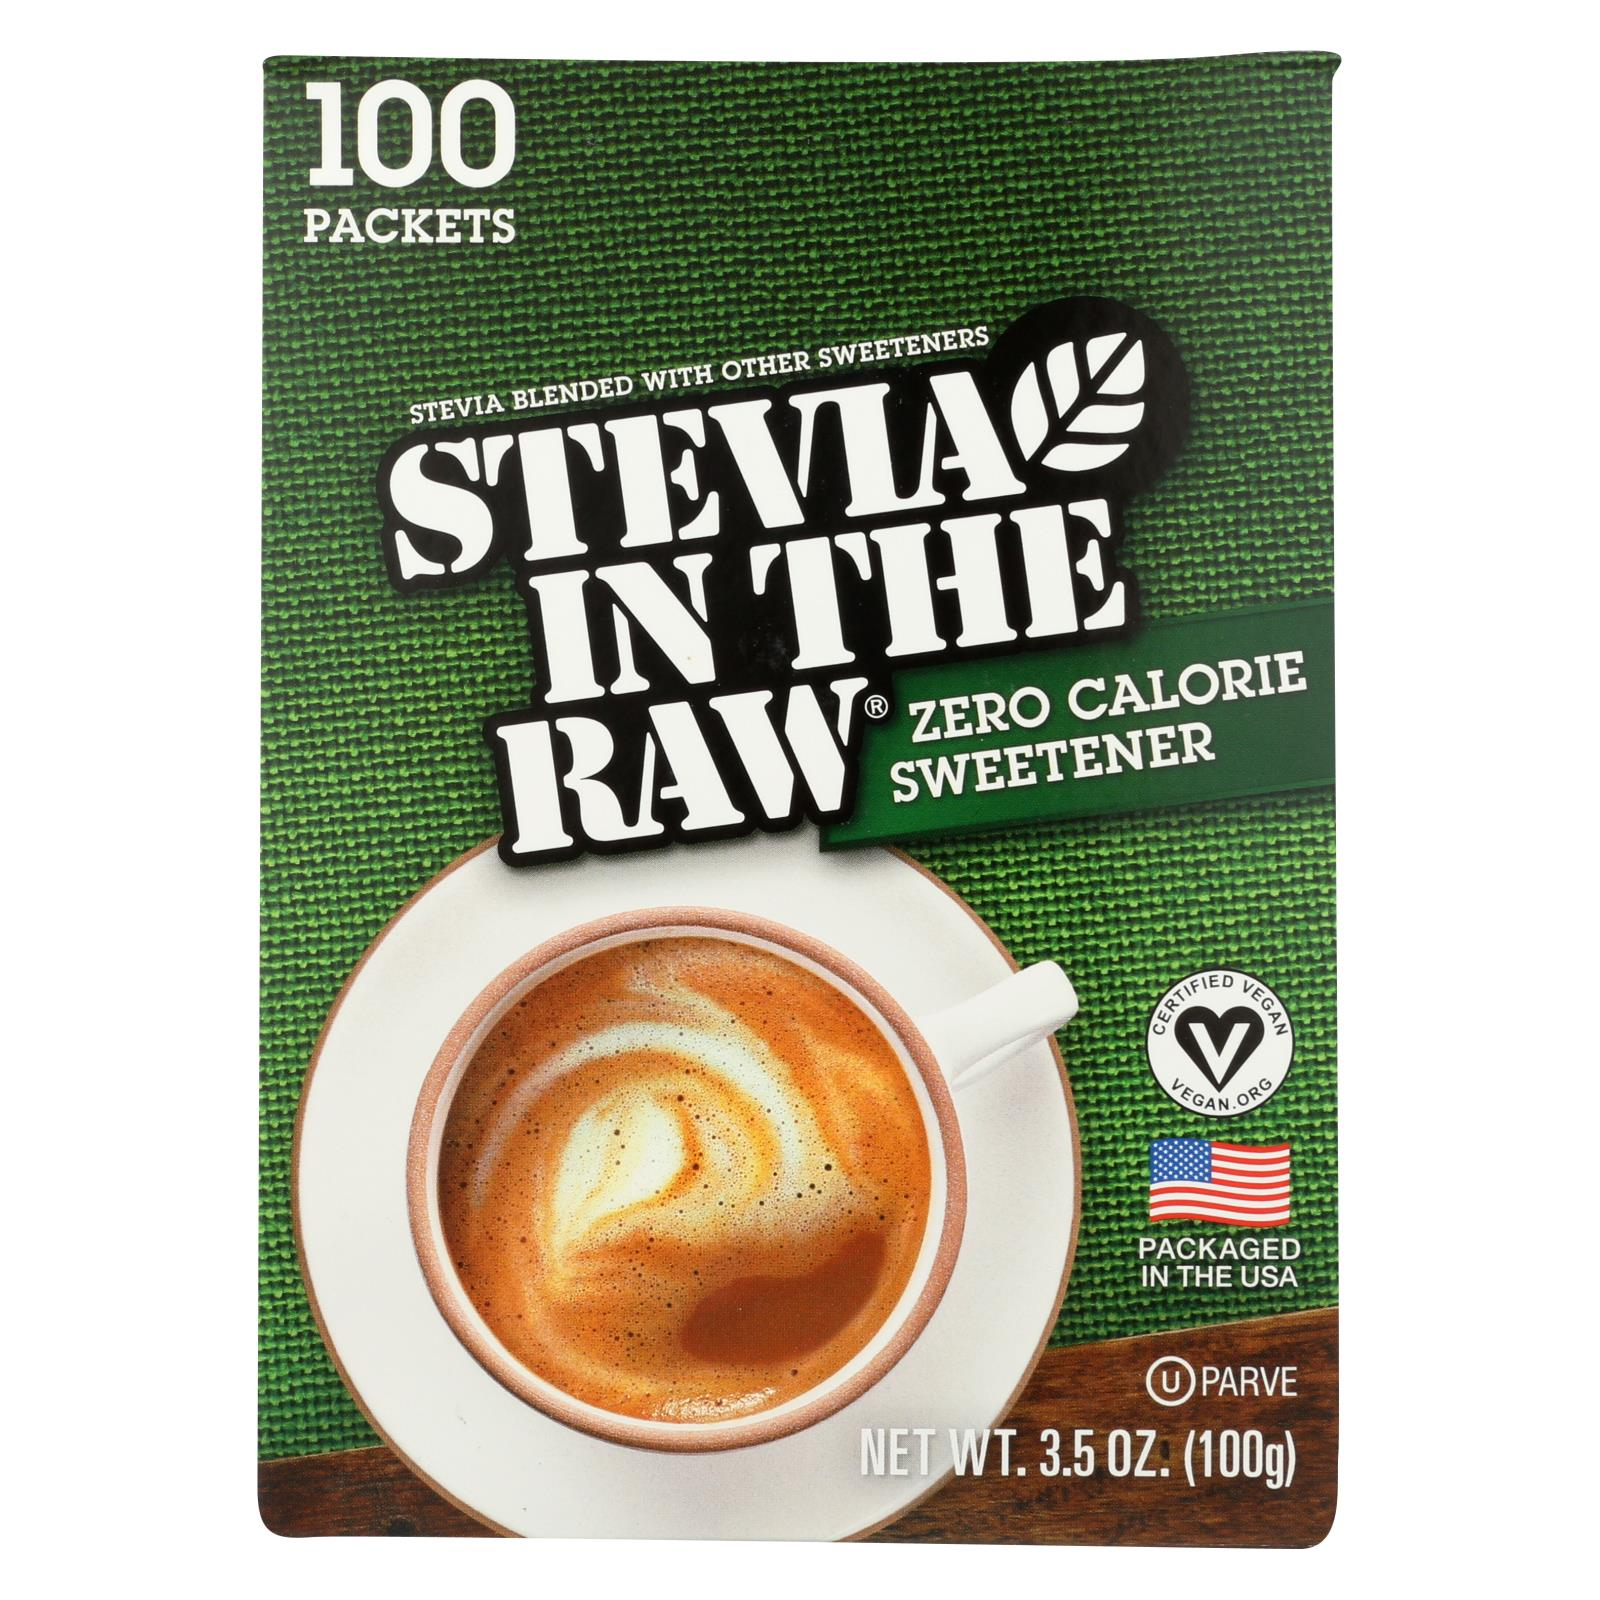 Stevia In The Raw Sweetener - Packets - Case Of 12 - 100 Count HG1003375